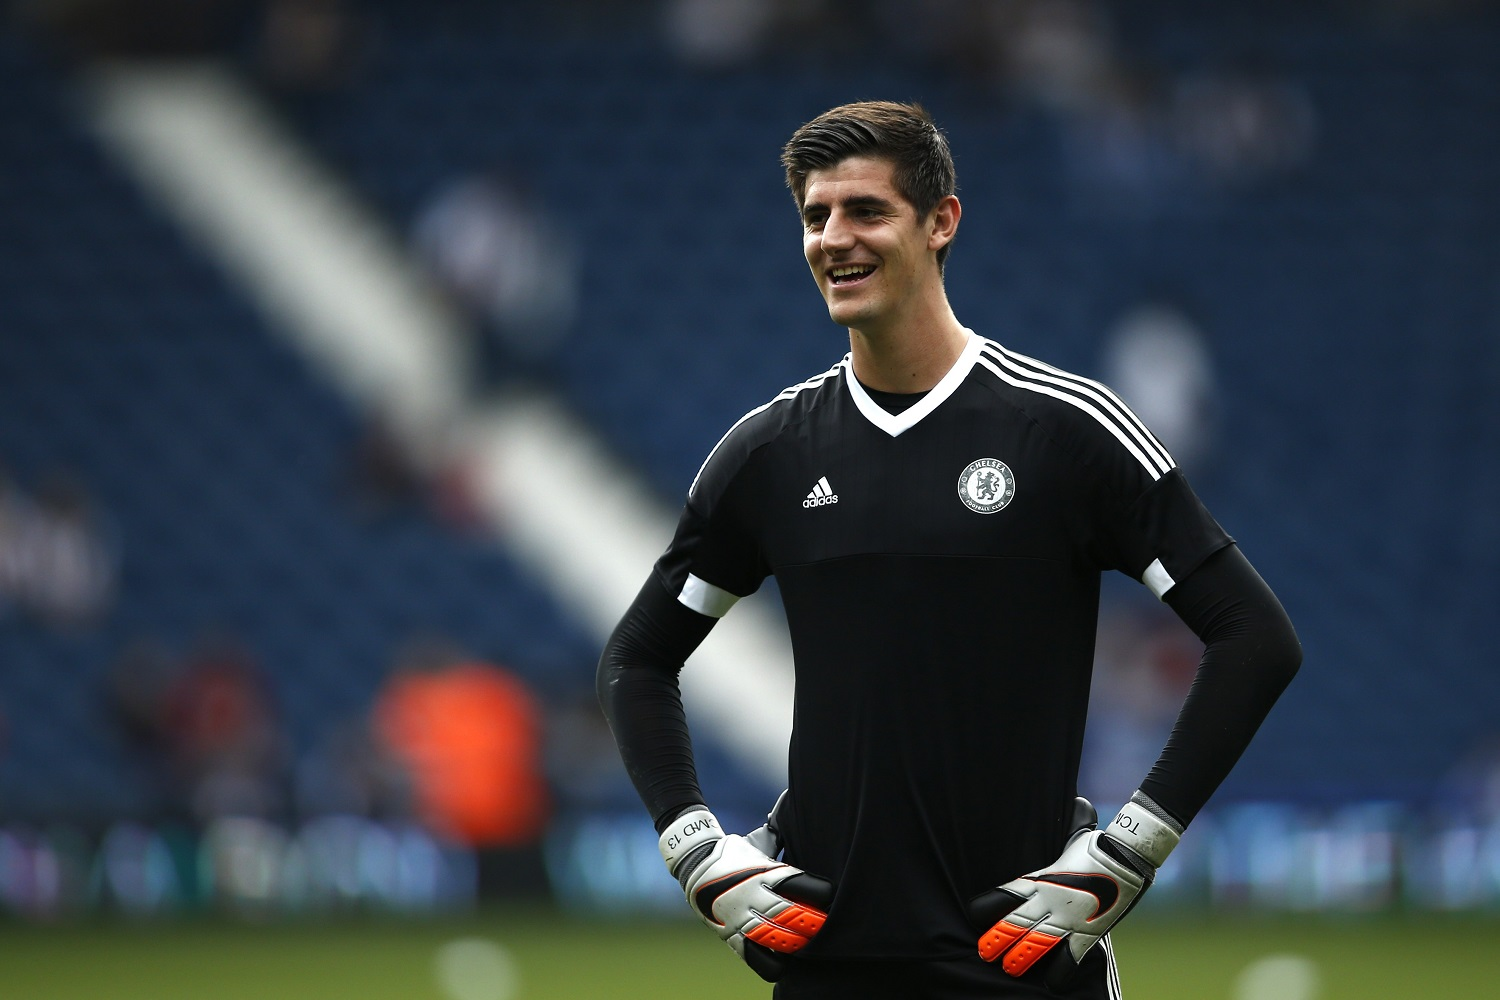 Berita Chelsea : Hiddink Inginkan Courtois Tetap Berseragam The Blues